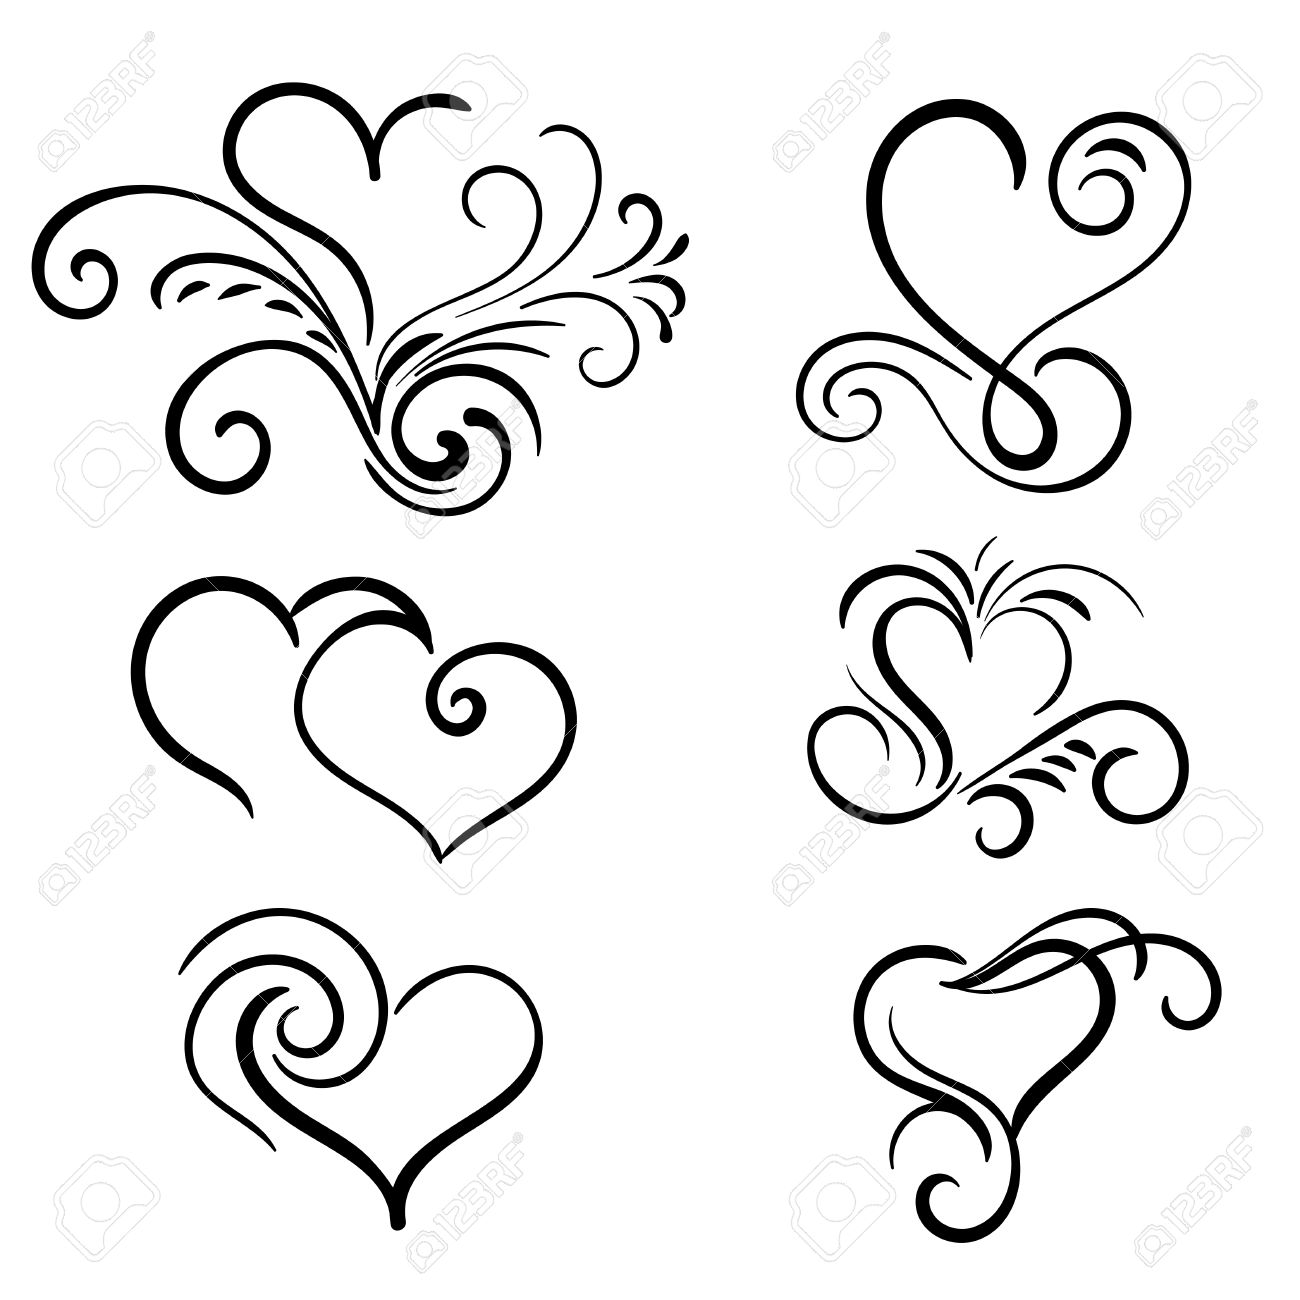 hand drawn vector swirl heart elements royalty free cliparts rh 123rf com free vector swirl download free vector swirl background